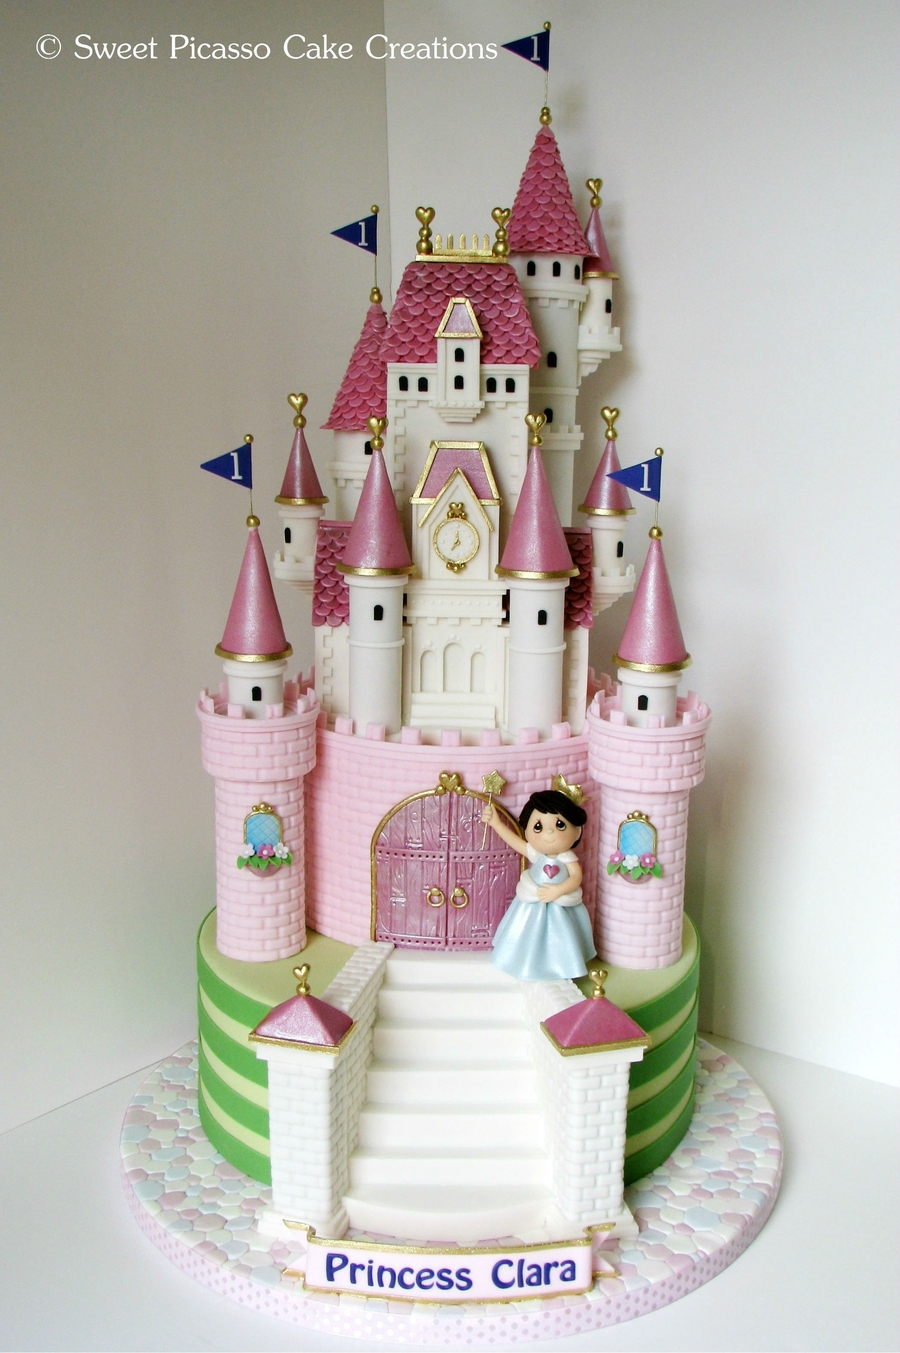 I Think Every Mom Dreams Of Making A Pretty Castle Cake For Their Little Girl So Much Fun To Make 12 Stylized Grass Tier 8 Textured